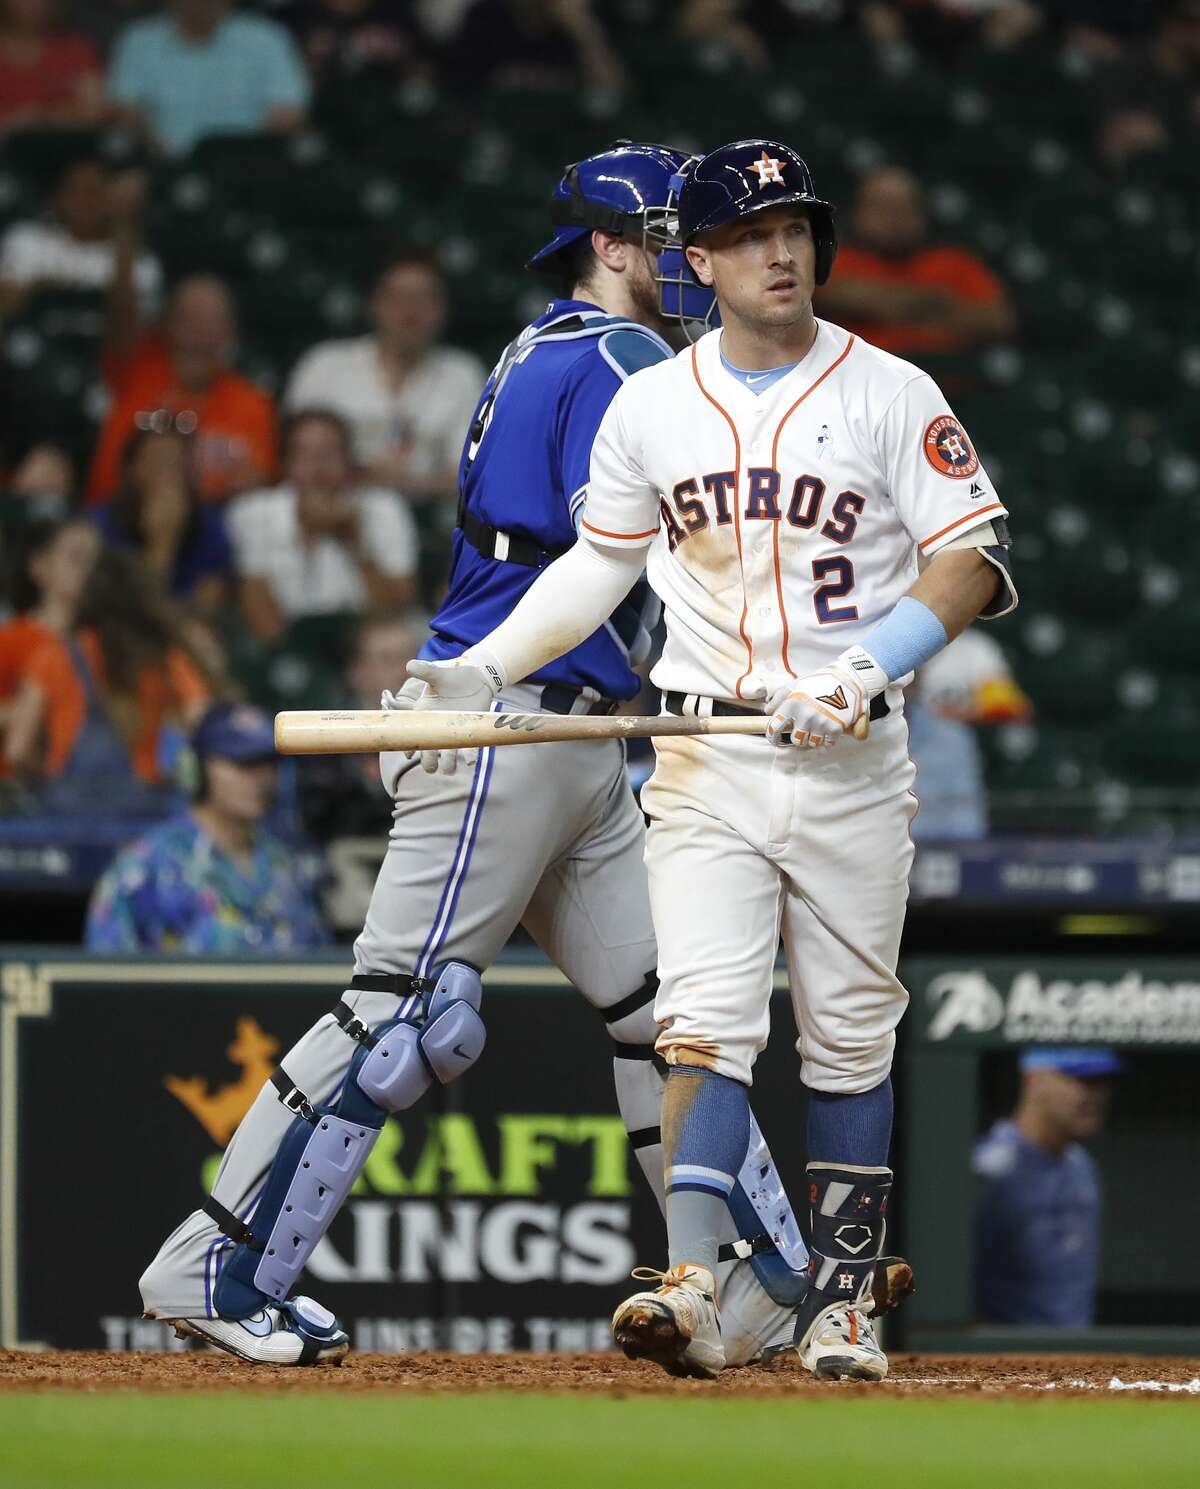 Houston Astros Alex Bregman (2) reacts after striking out to end the MLB baseball game at Minute Maid Park, Sunday, June 16, 2019. Astros lost to Toronto Blue Jays 12-0.